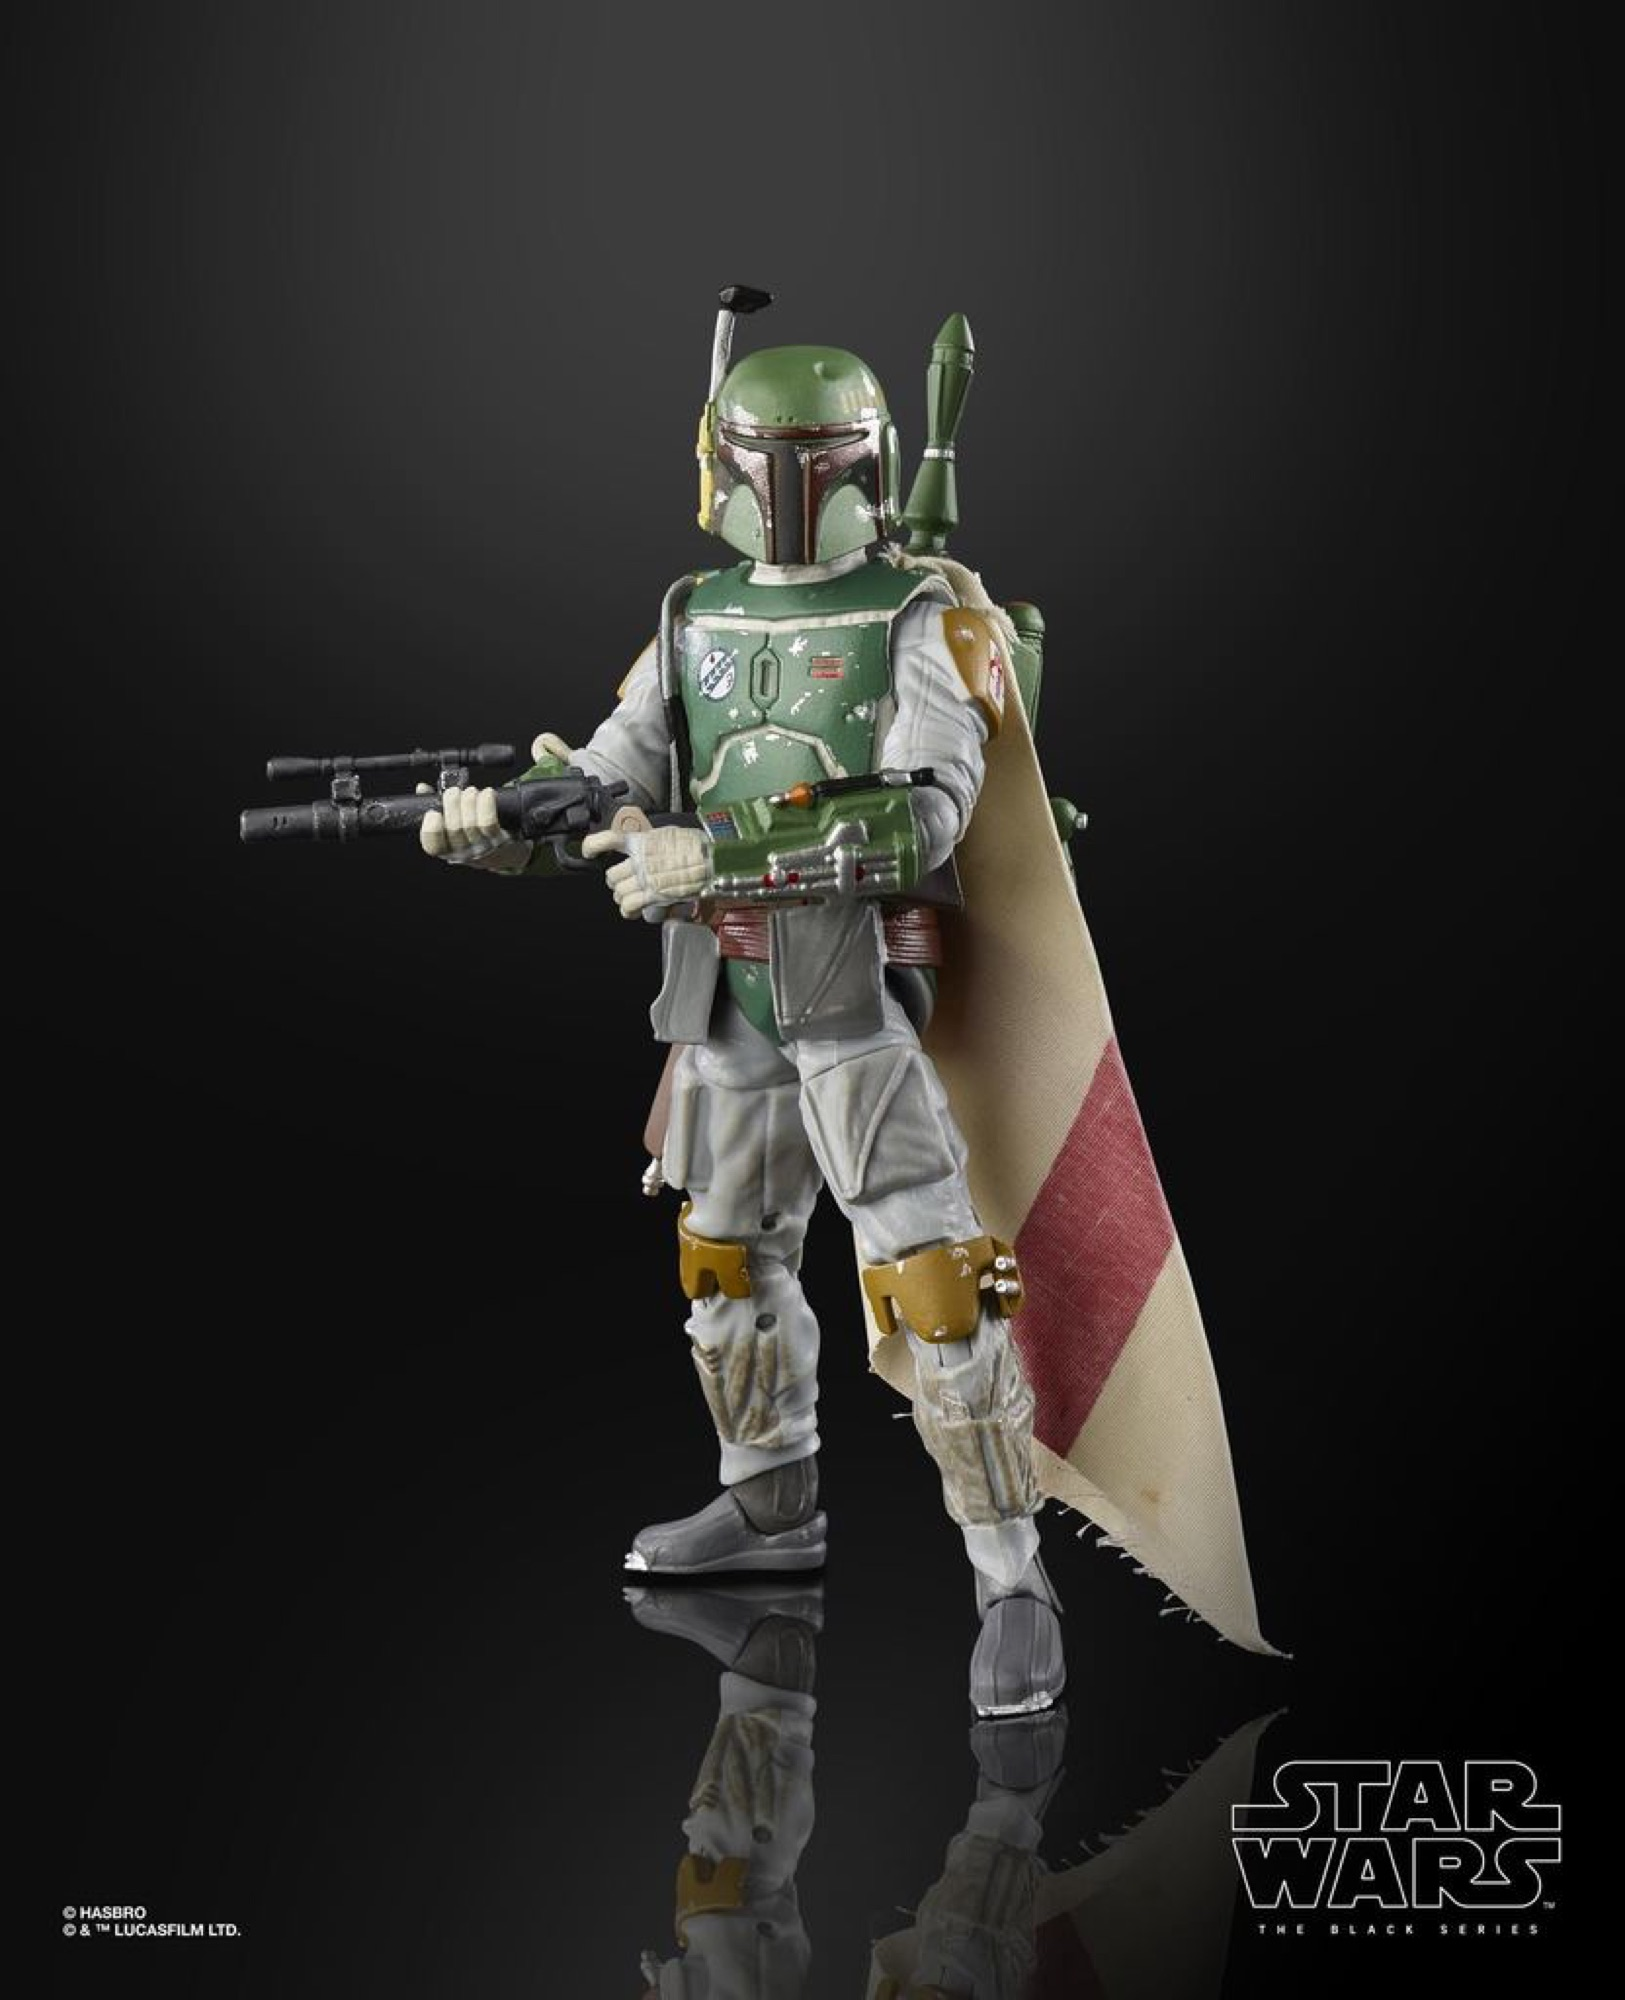 BOBA FETT E5 FIGURA 15 CM STAR WARS 40TH BLACK SERIES E80805L0